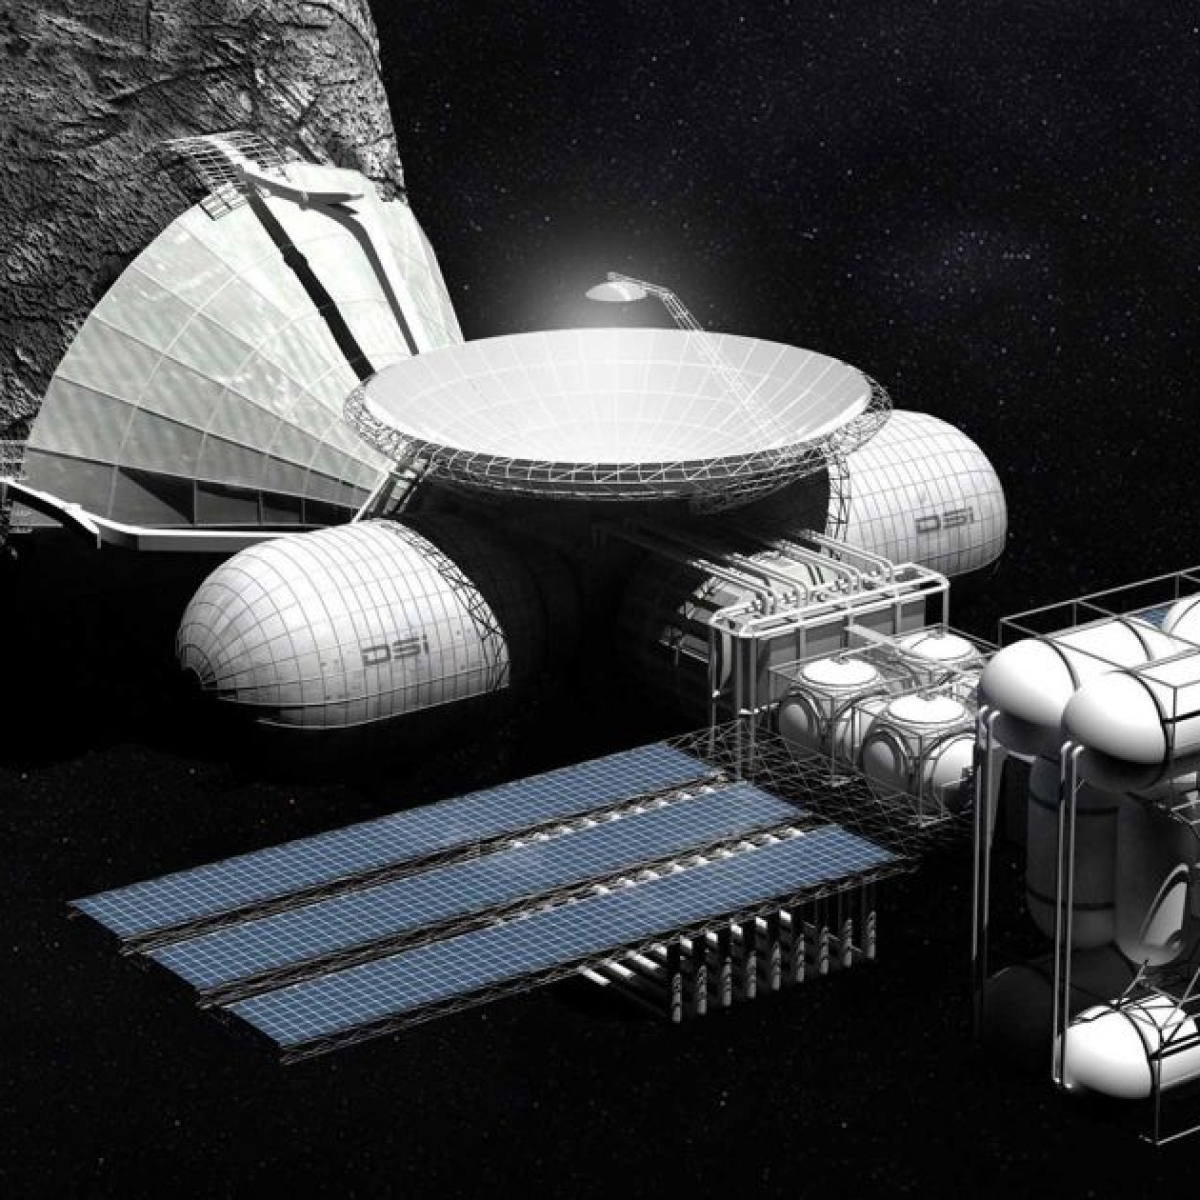 Luxembourg aims to become 'silicon valley' of asteroid mining, what exactly is it?